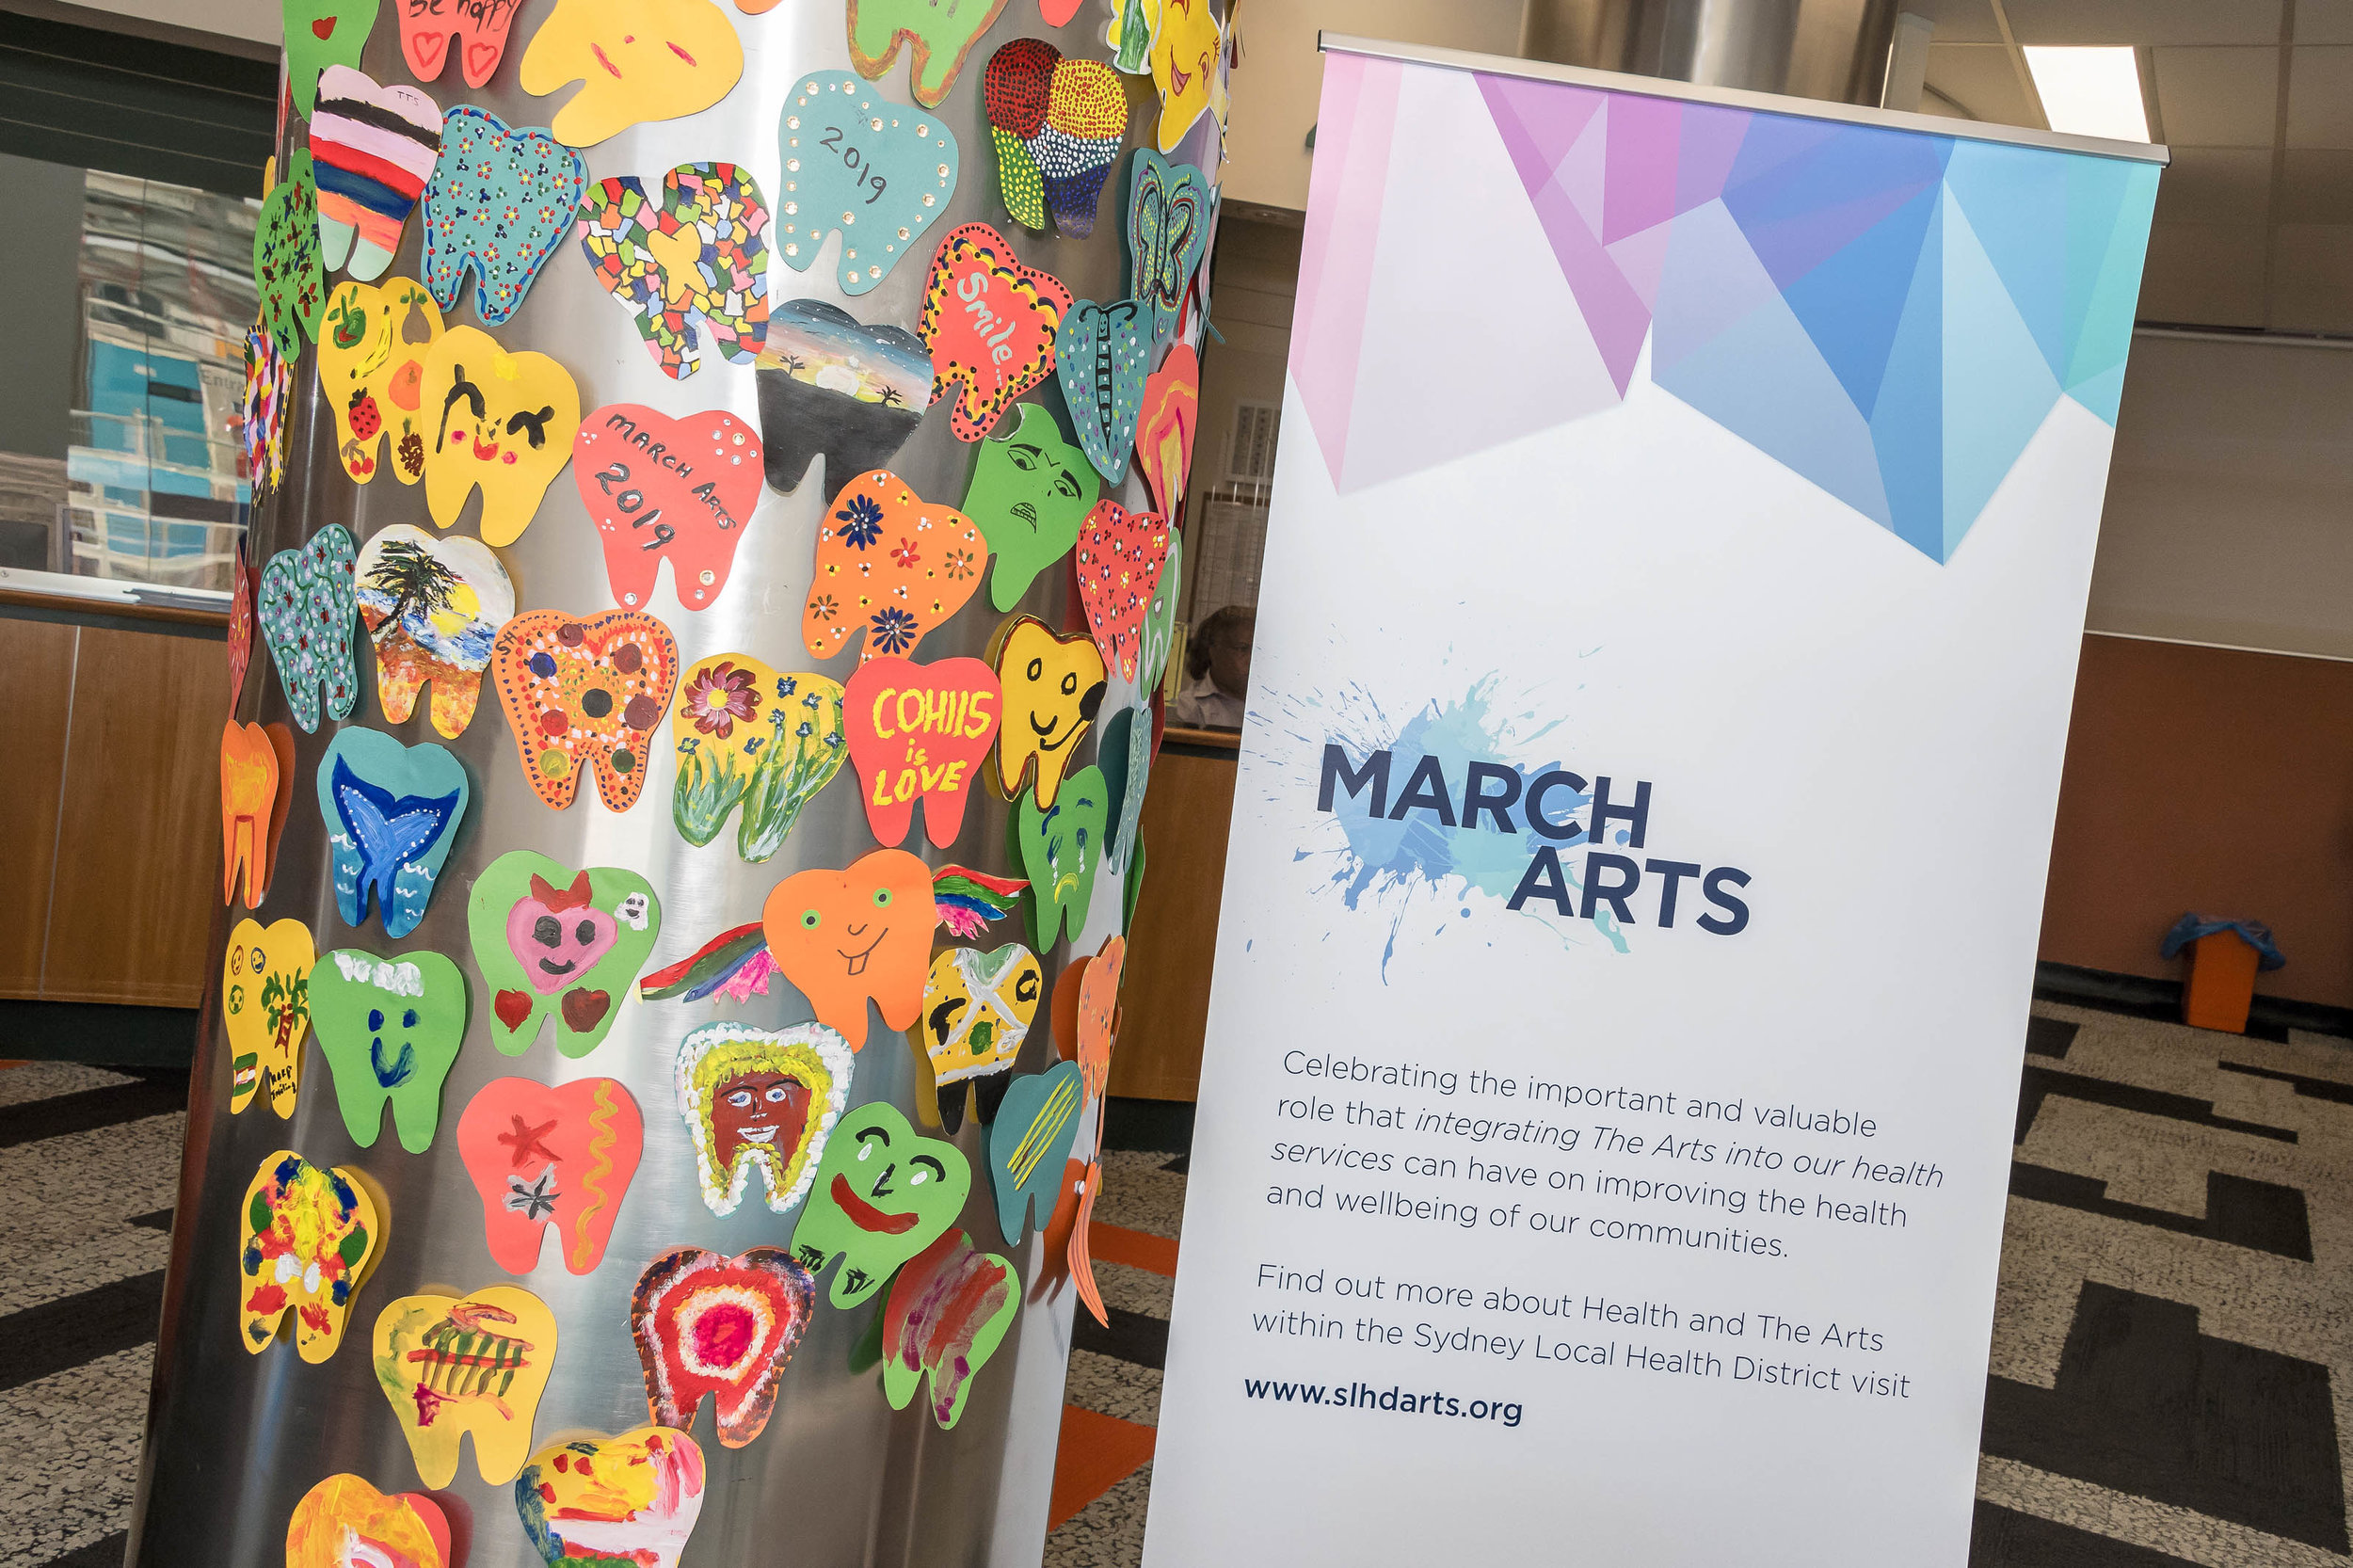 86365 March Arts Sydney Dental Hosp Colour Competition 20190326 WS2-231776.jpg